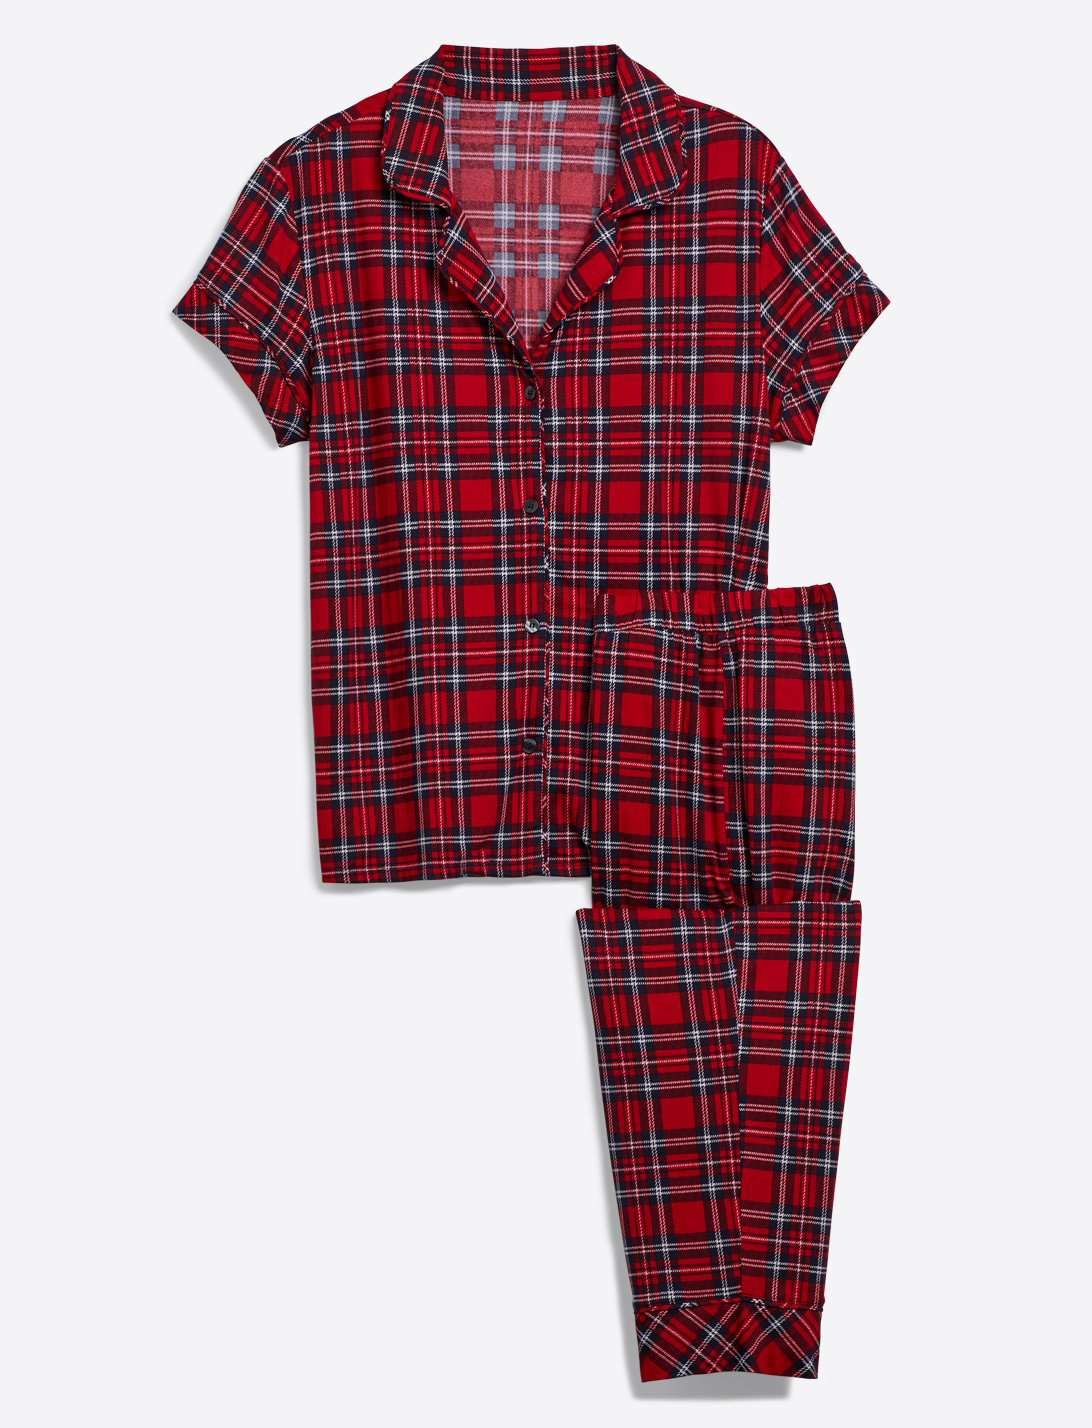 DraperJames Plaid Pajamas